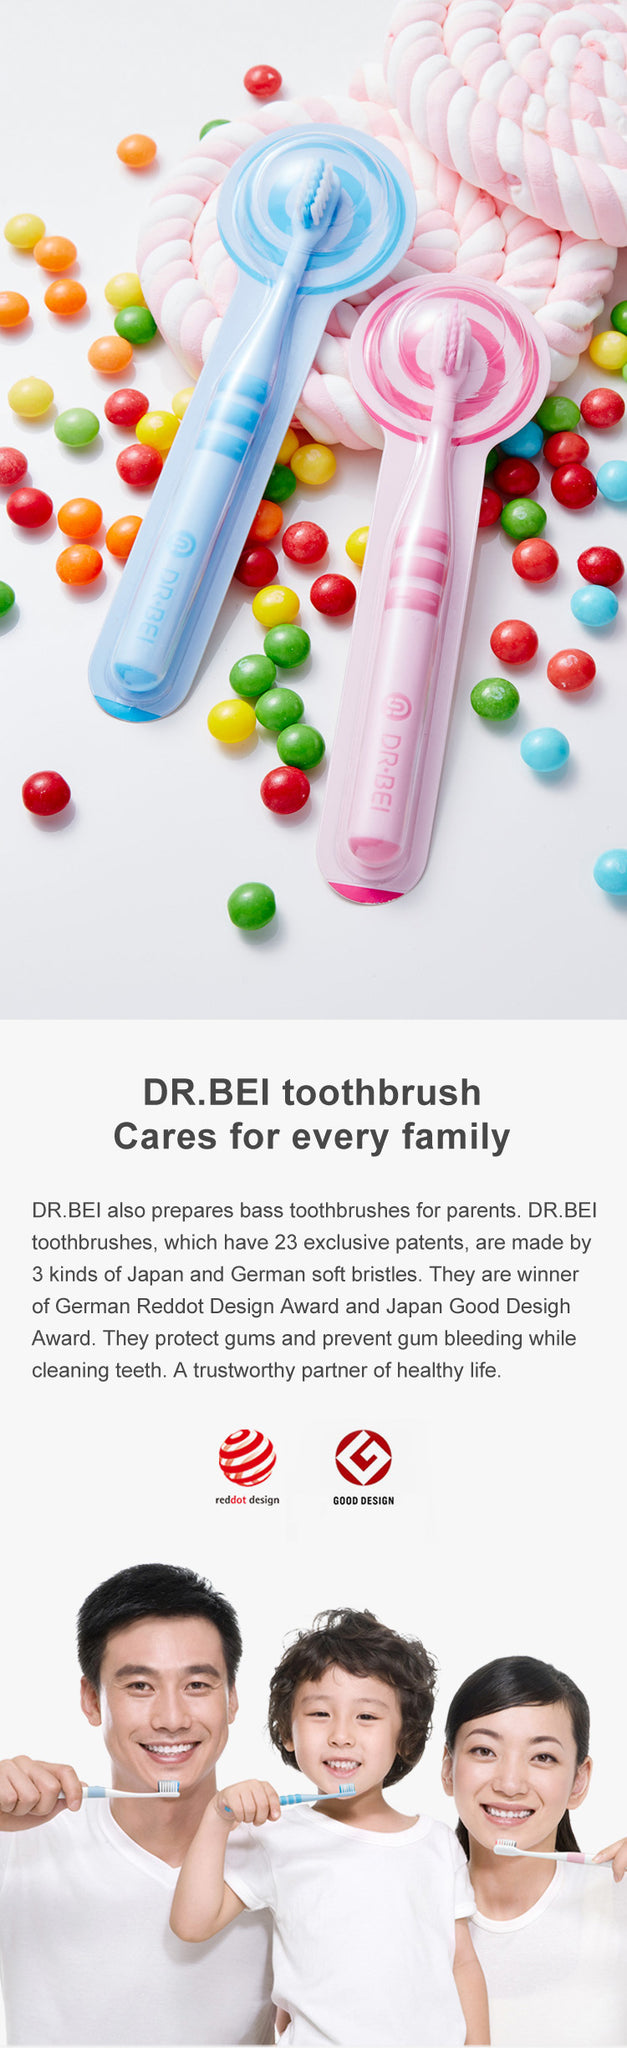 DR.BEI Children Toothbrush (6-12 Years old) Xiaomi Youpin DR·BEI Mini Kids Toothbrush Deep Clean Soft Sandwish-bedded Texture Dental Oral Care Health for Children Teeth Brush Cleaning